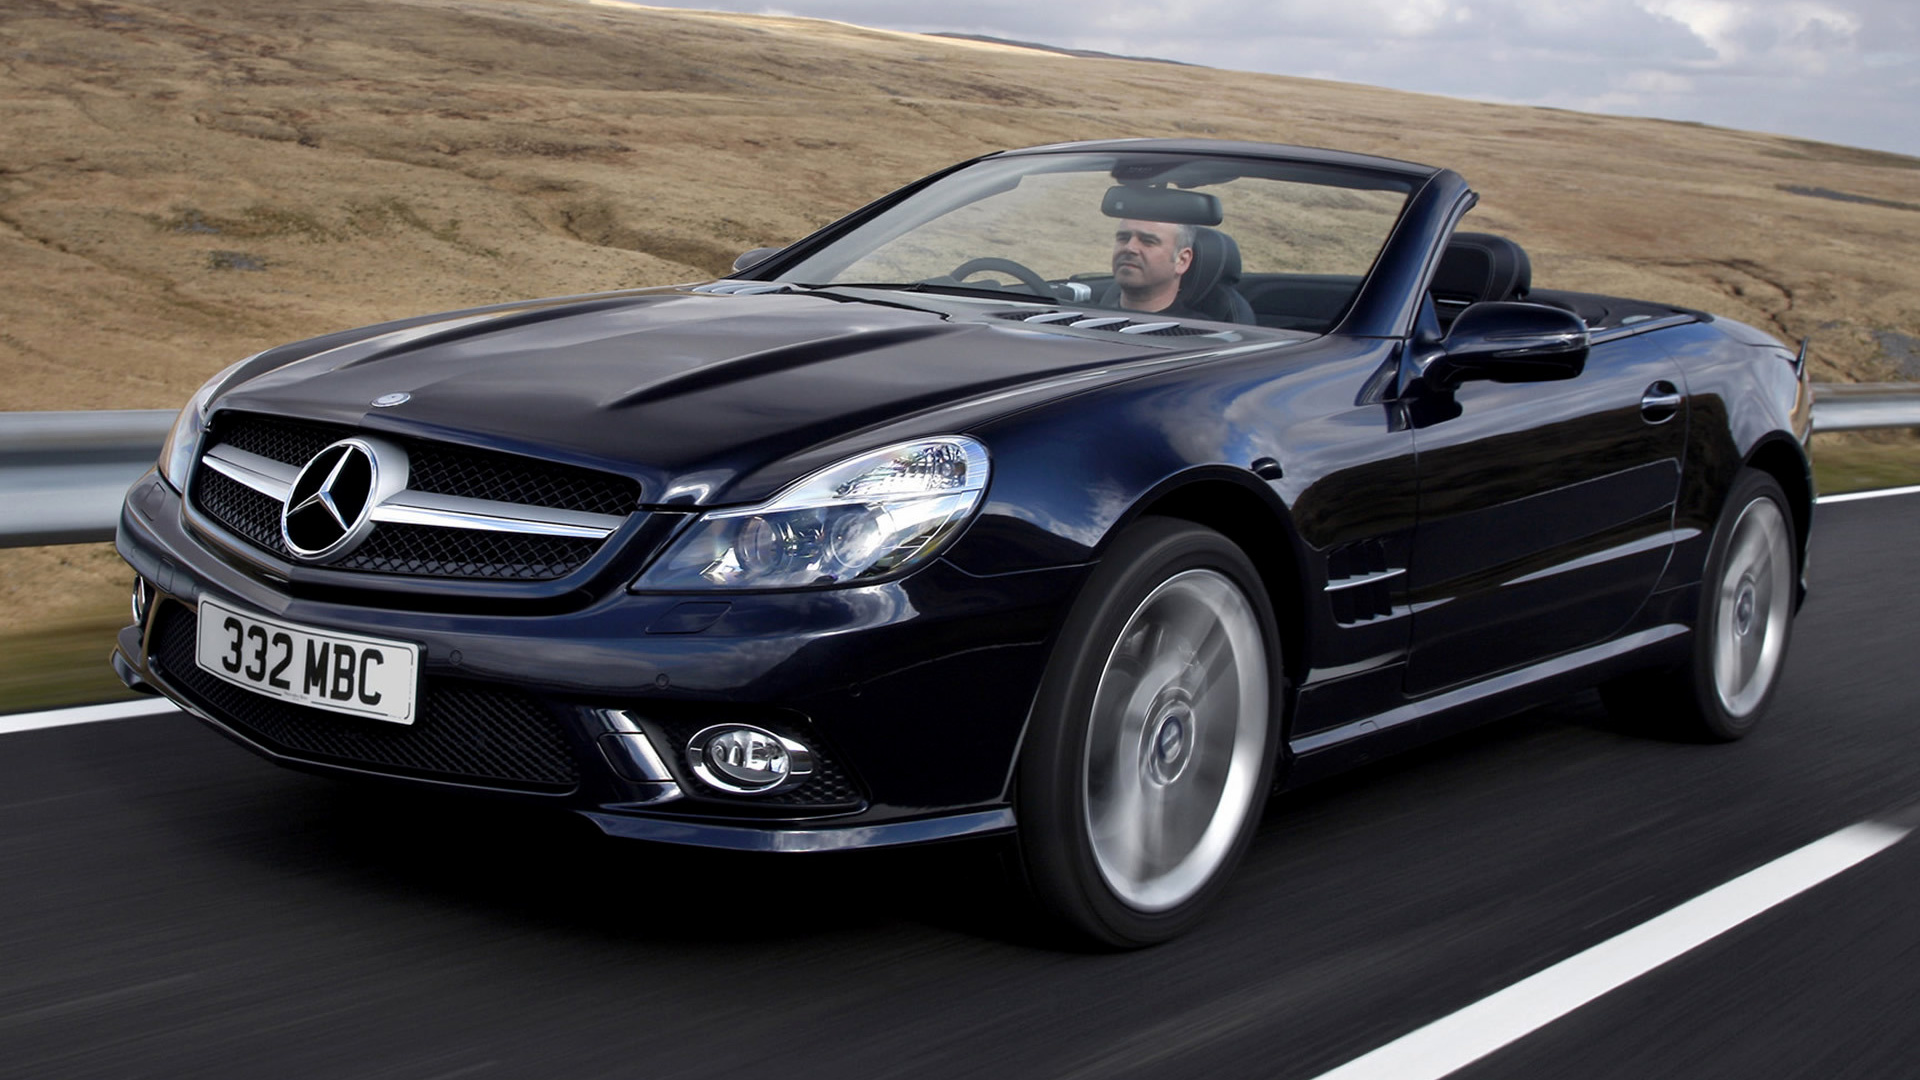 Mercedes benz sl class amg styling 2008 uk wallpapers for Mercedes benz sl class